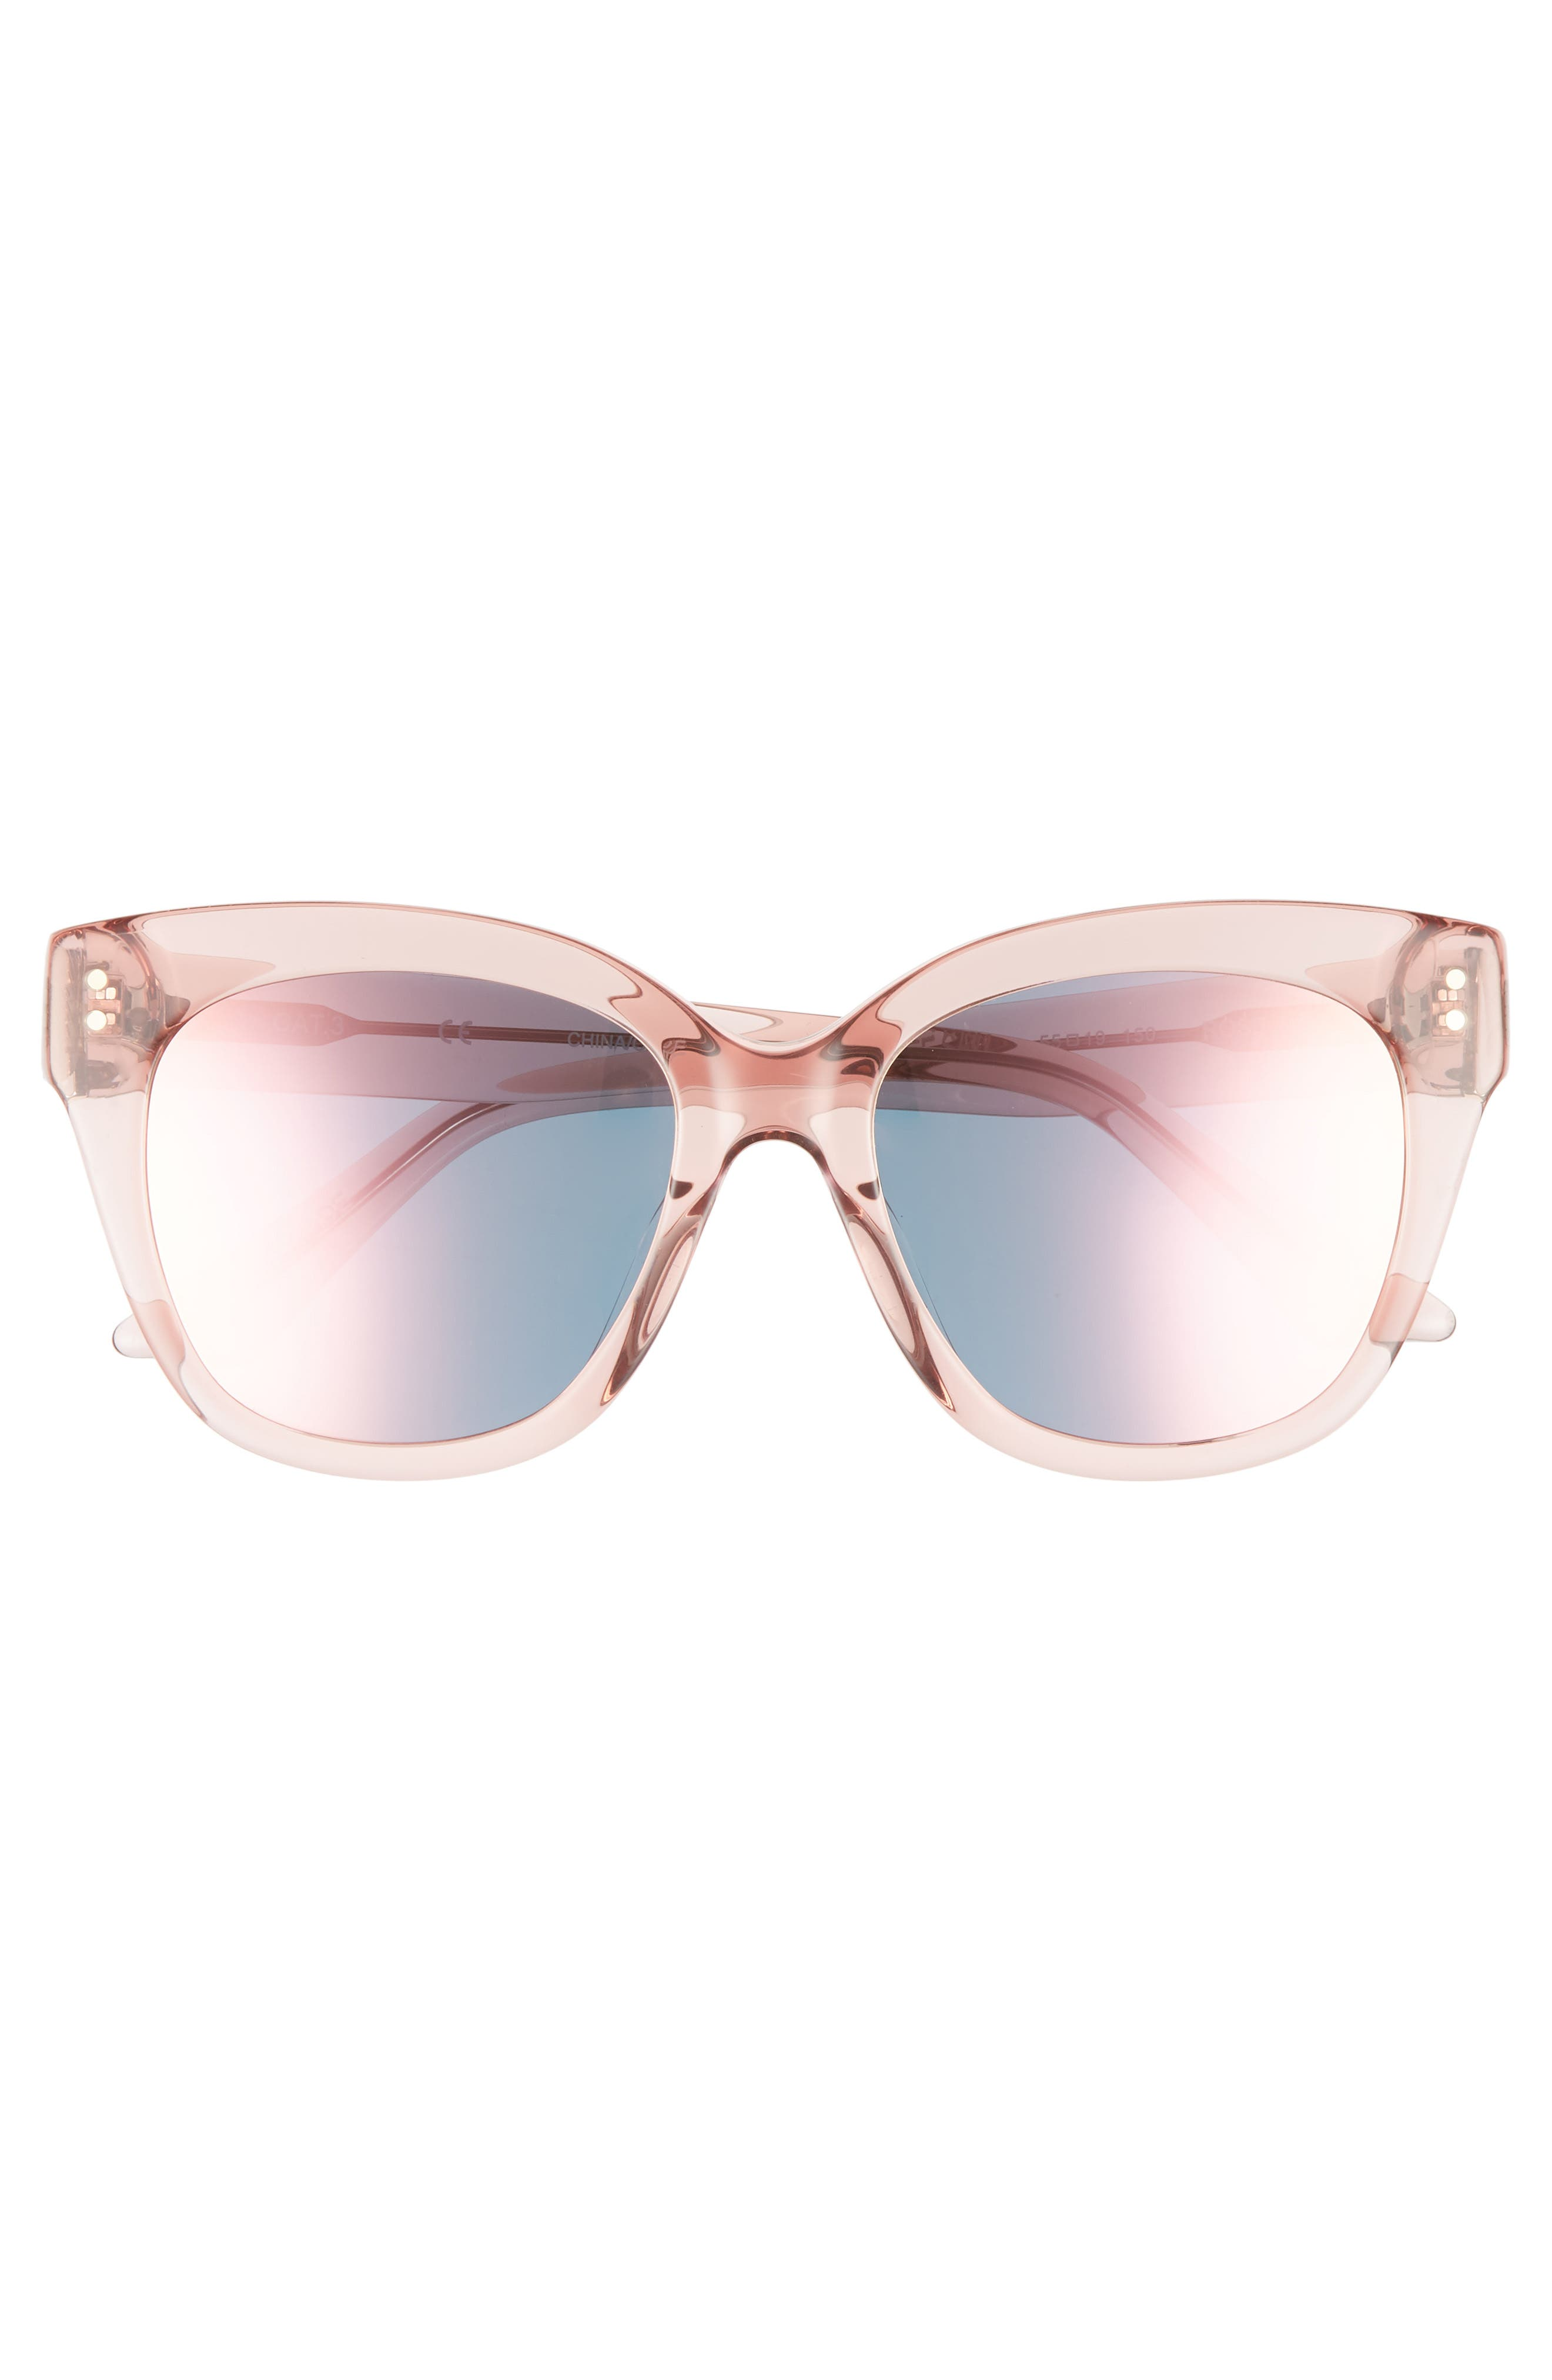 See Saw 55mm Cat Eye Sunglasses,                             Alternate thumbnail 3, color,                             650